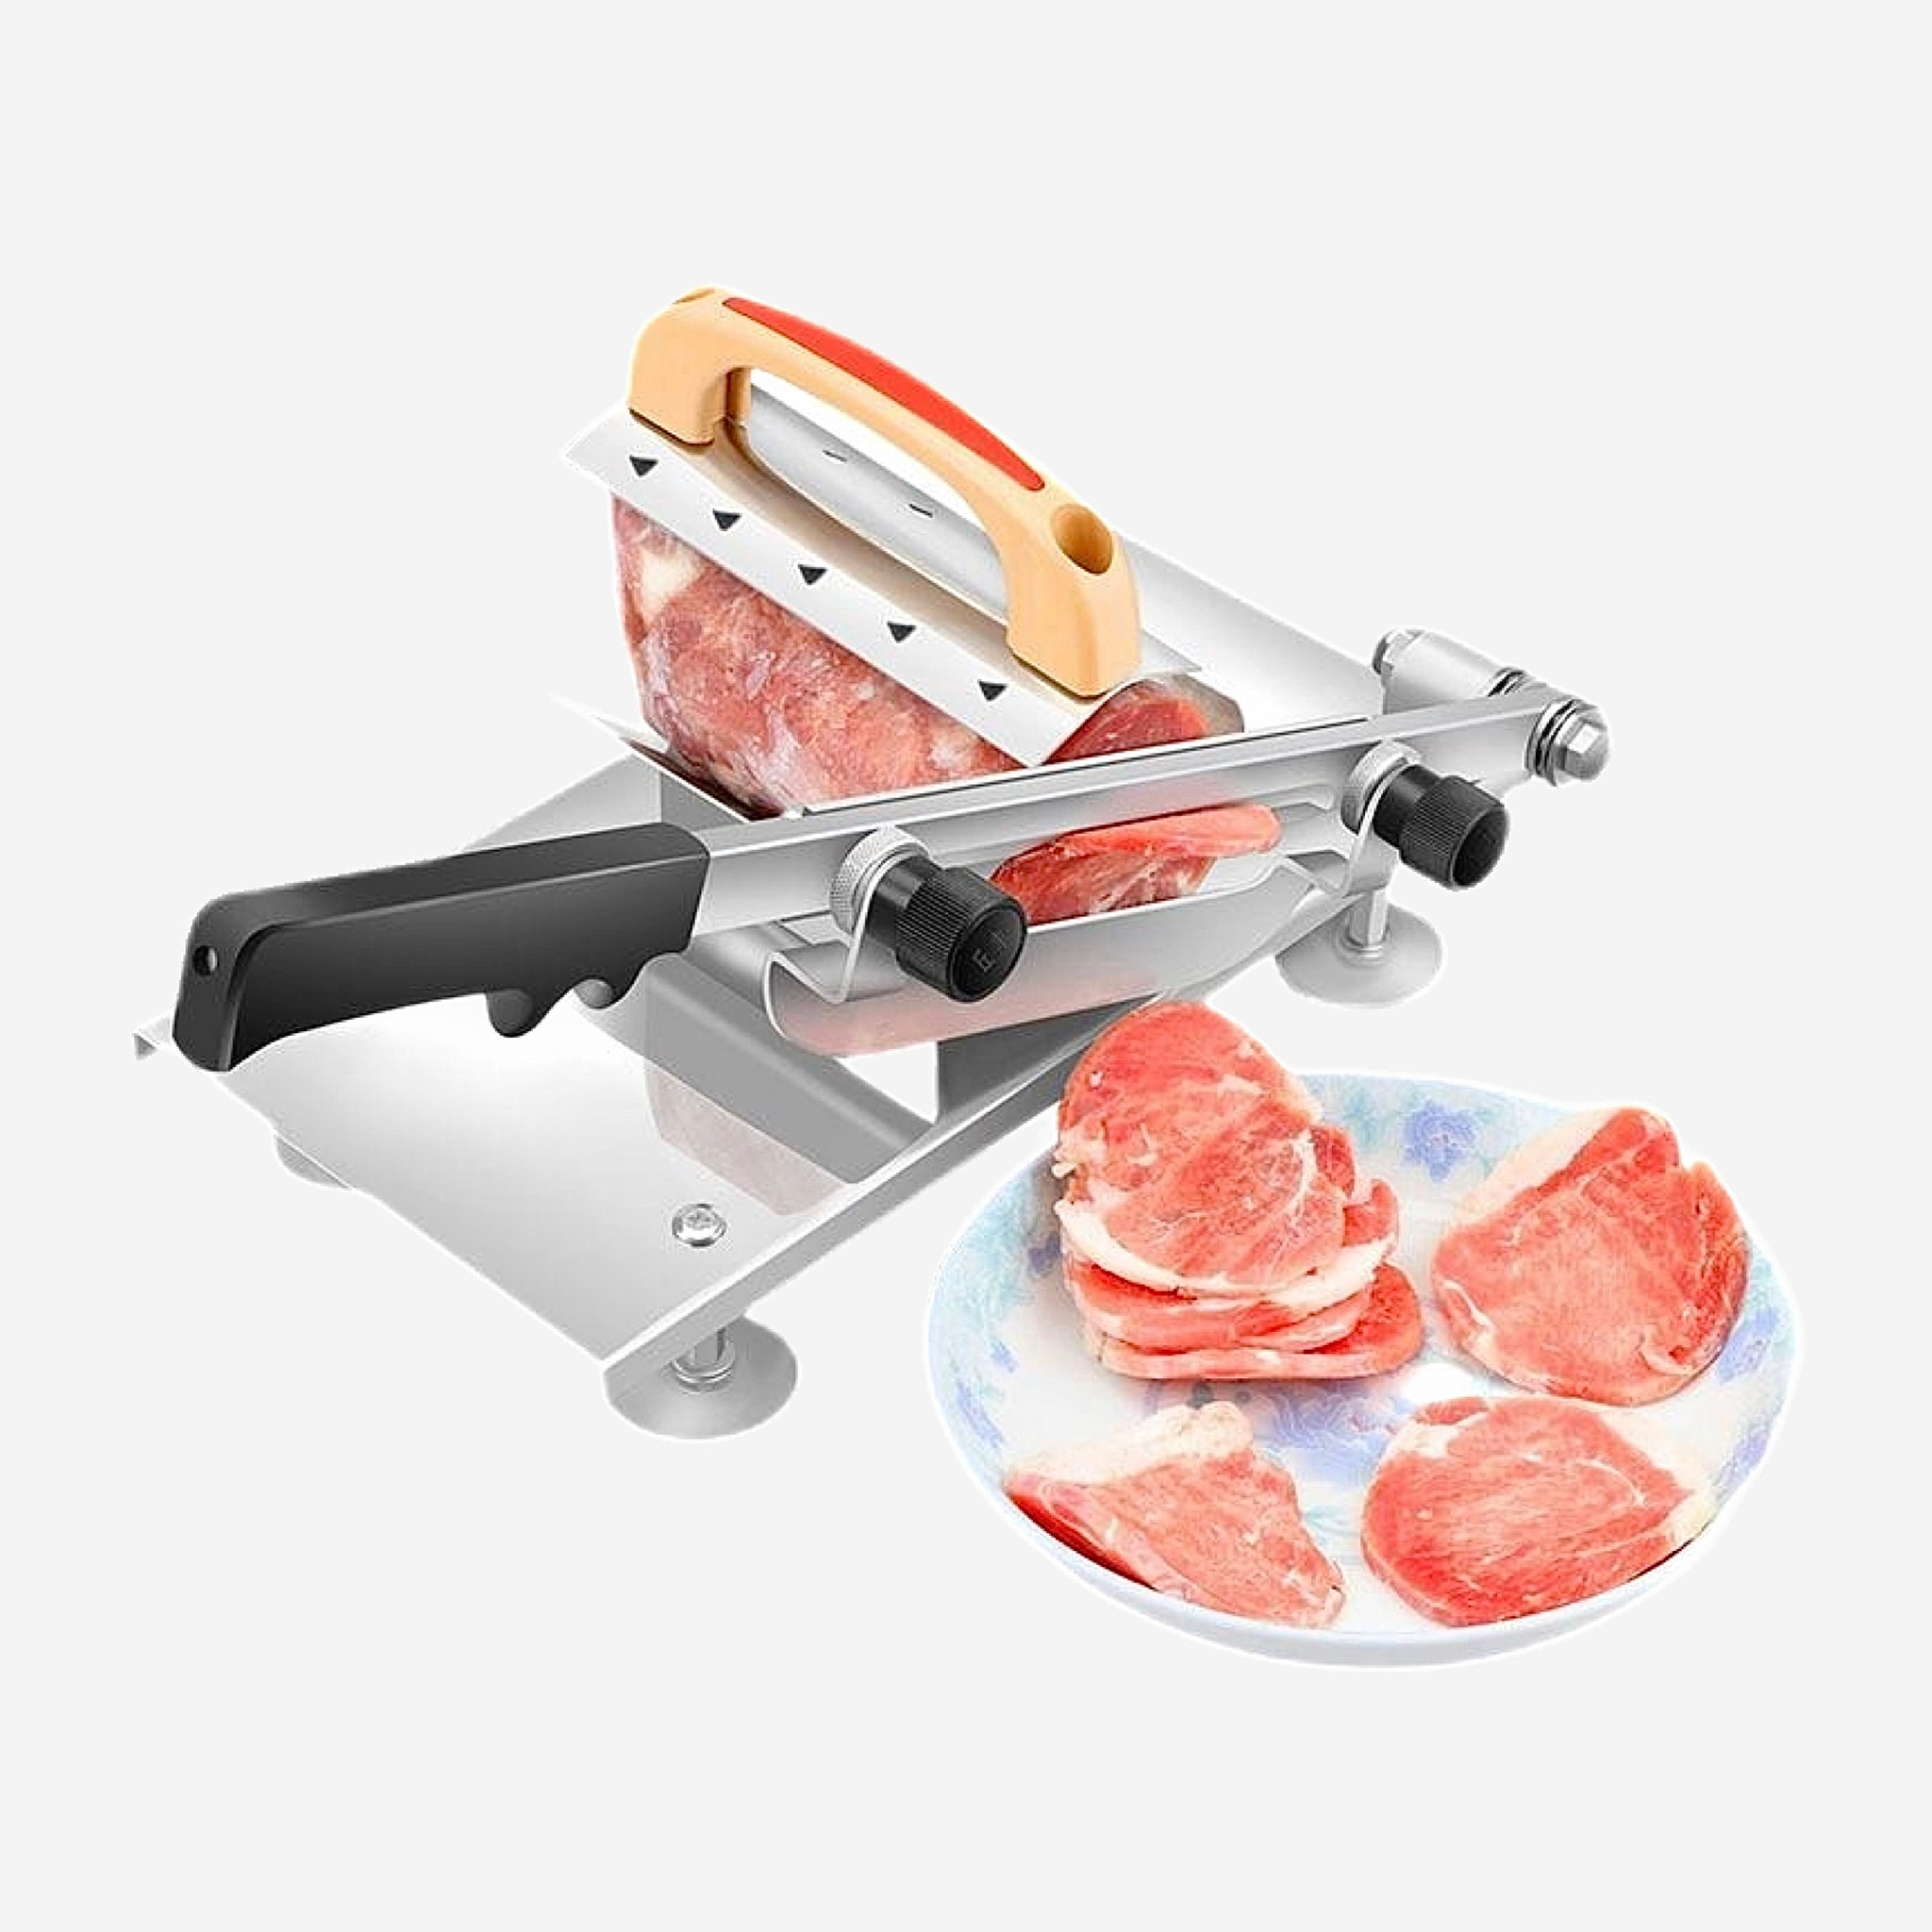 Multi Function Meat Slicer Manual Adjustable Thickness Meat Mutton Beef Cutter Slicing Machine Kitchen Tool Trend